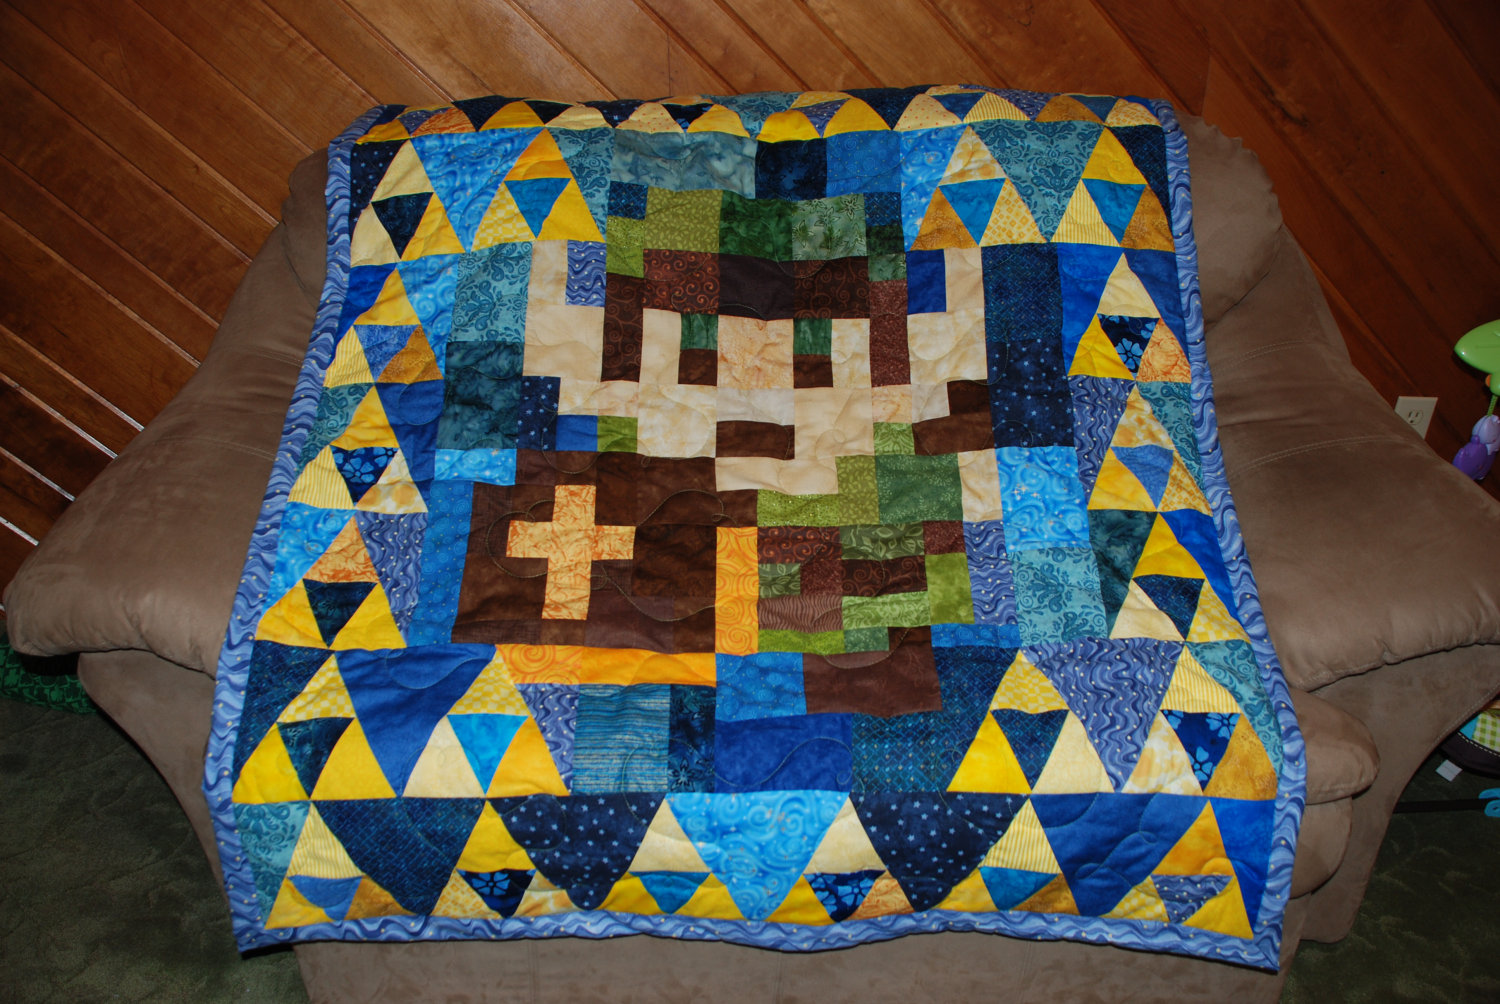 Legend of Zelda Link Quilt